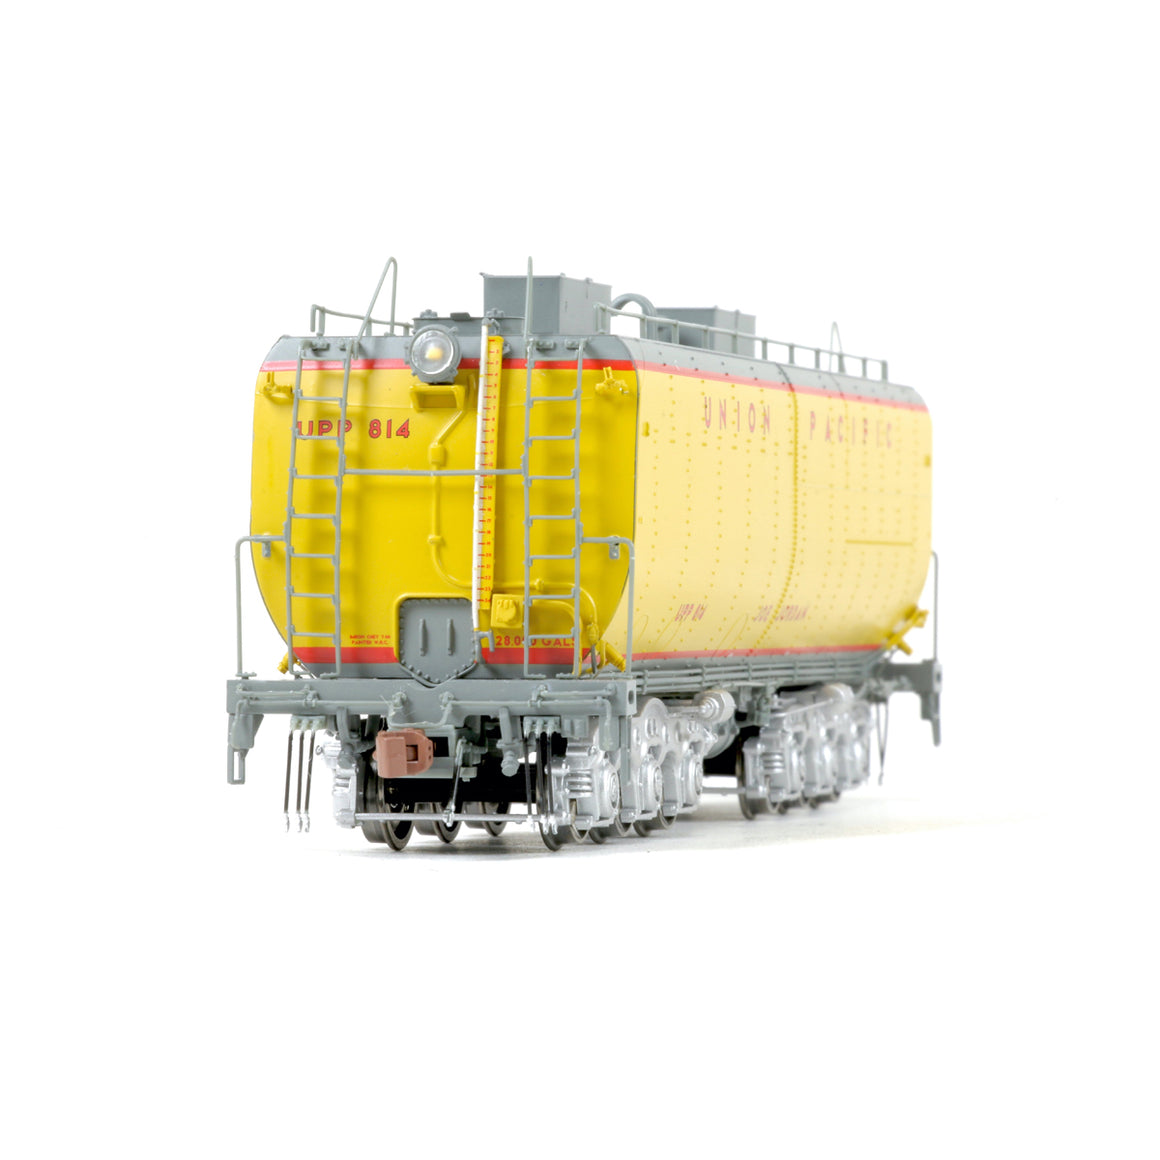 HO Scale: Rivet Counter: Union Pacific 24C Fuel Tender - UPP 814 - Joe Jordan